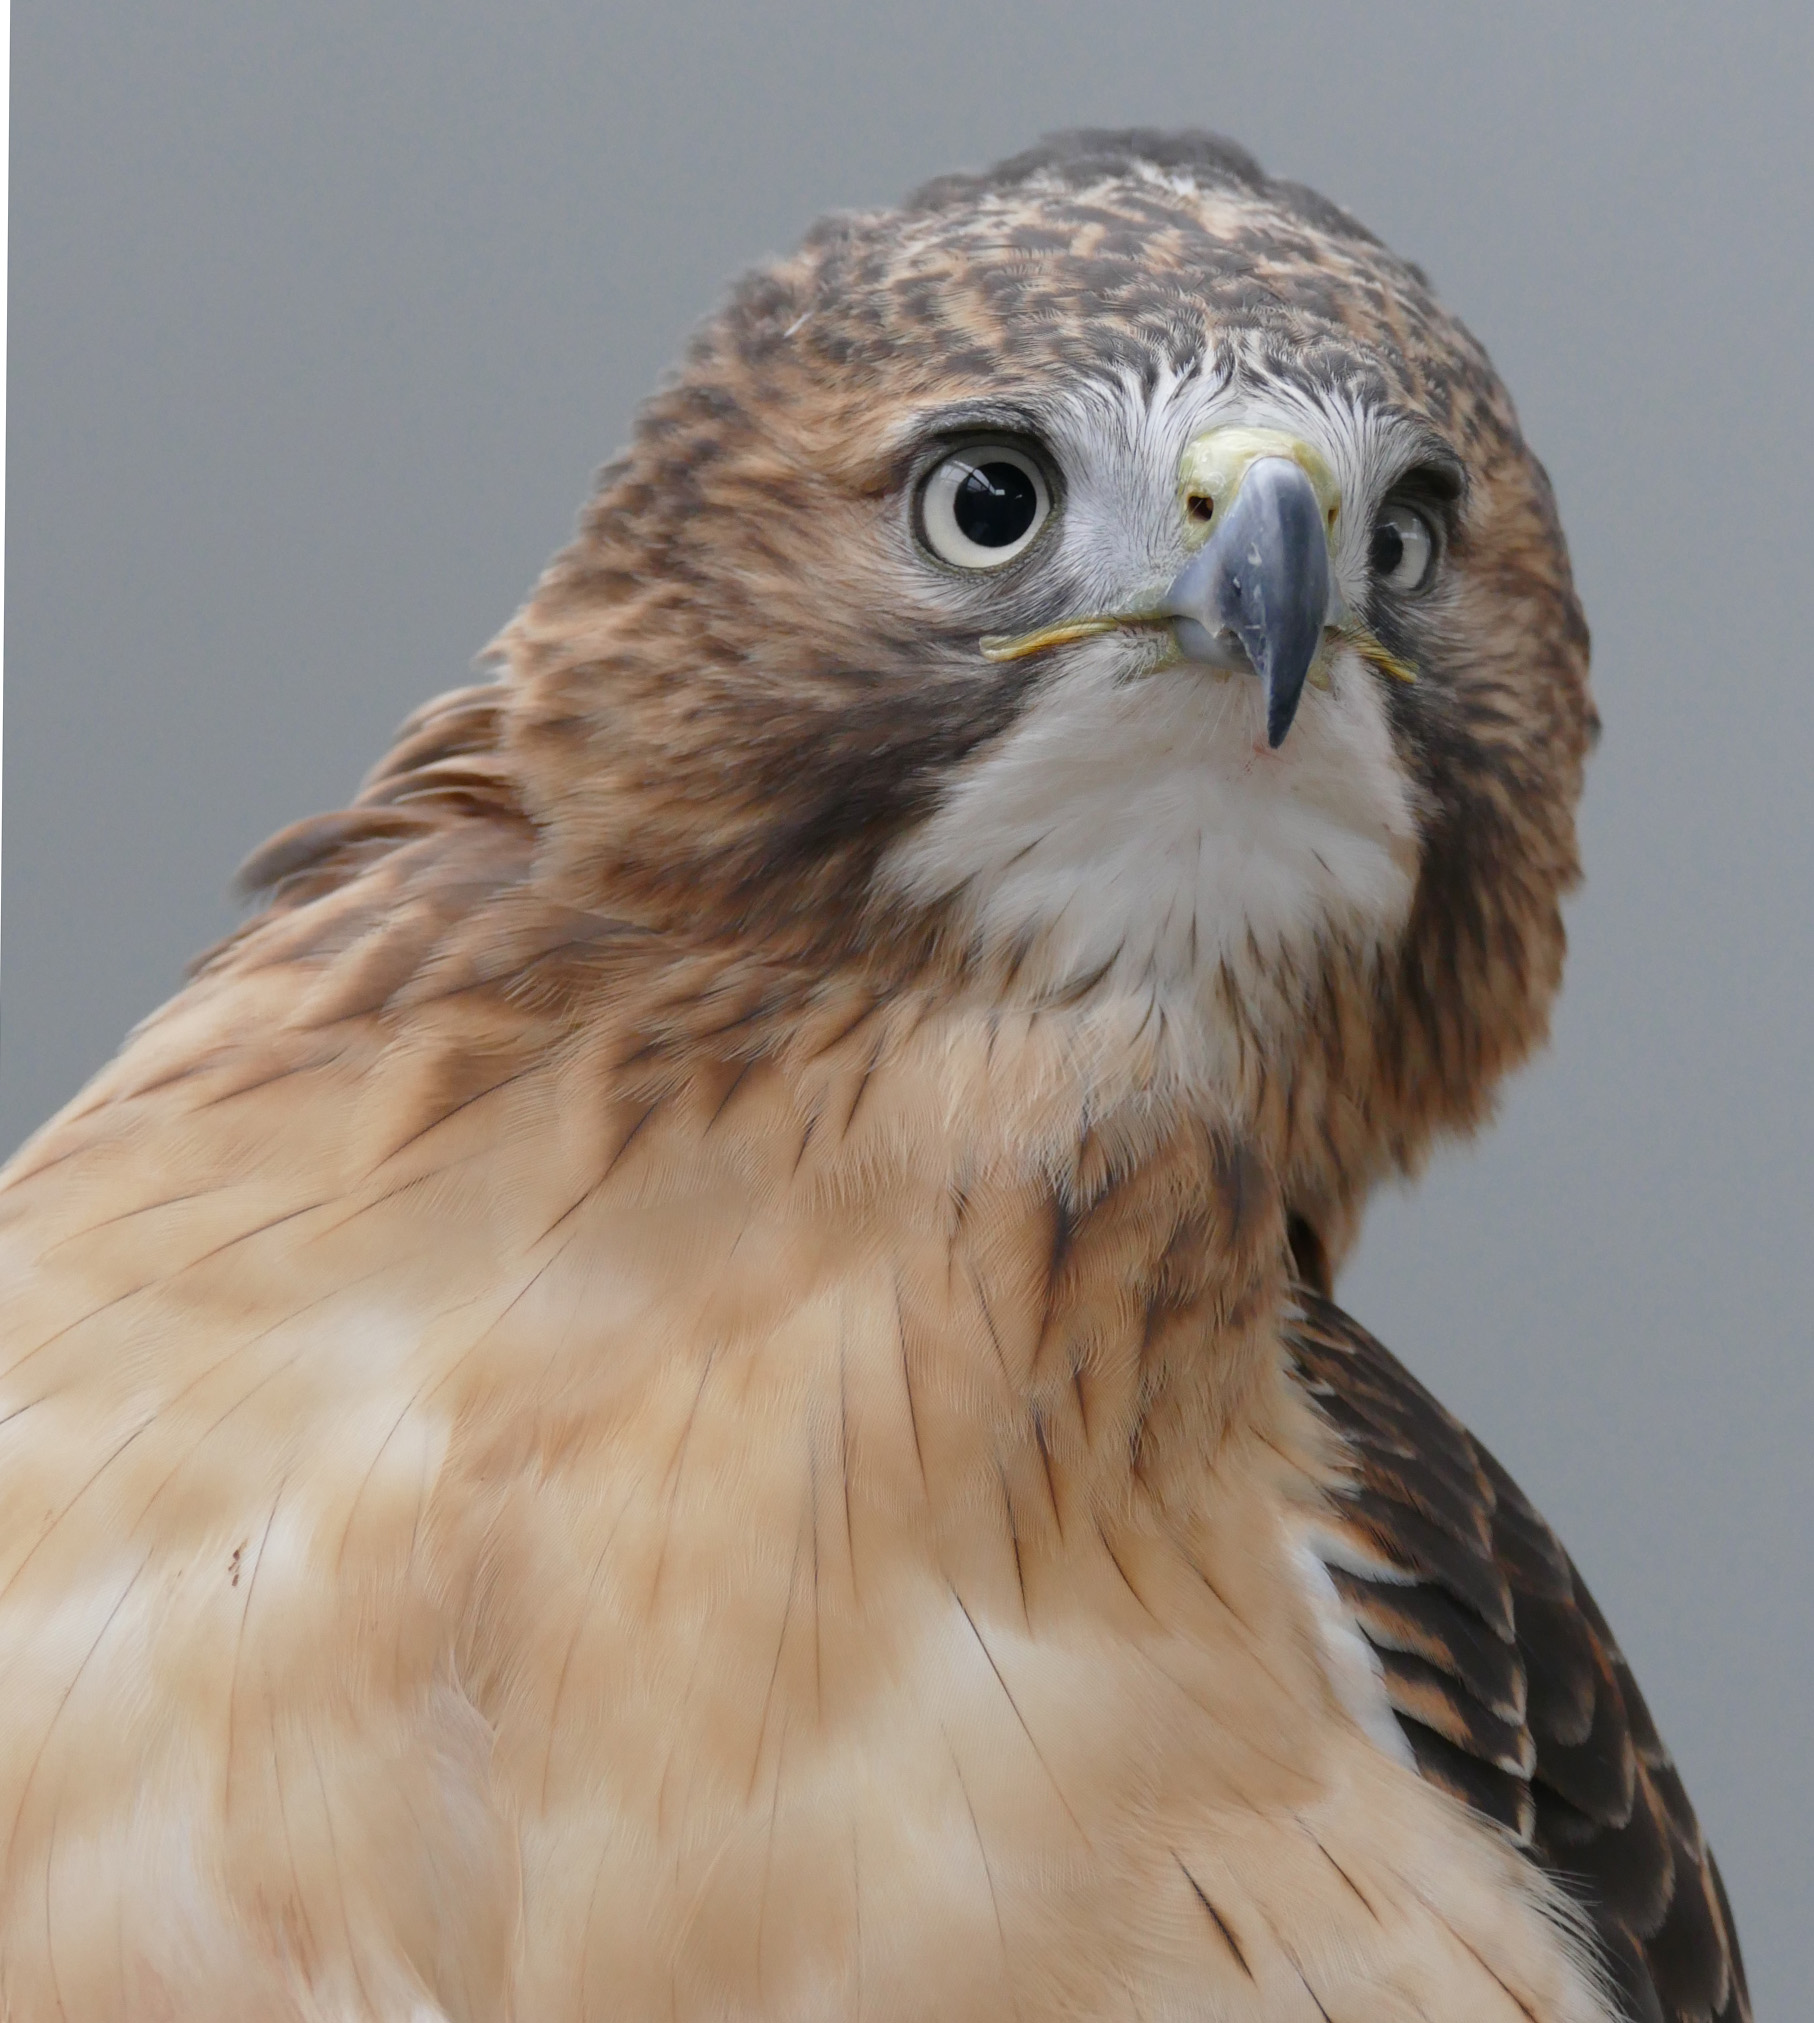 Luta, a red-tailed hawk